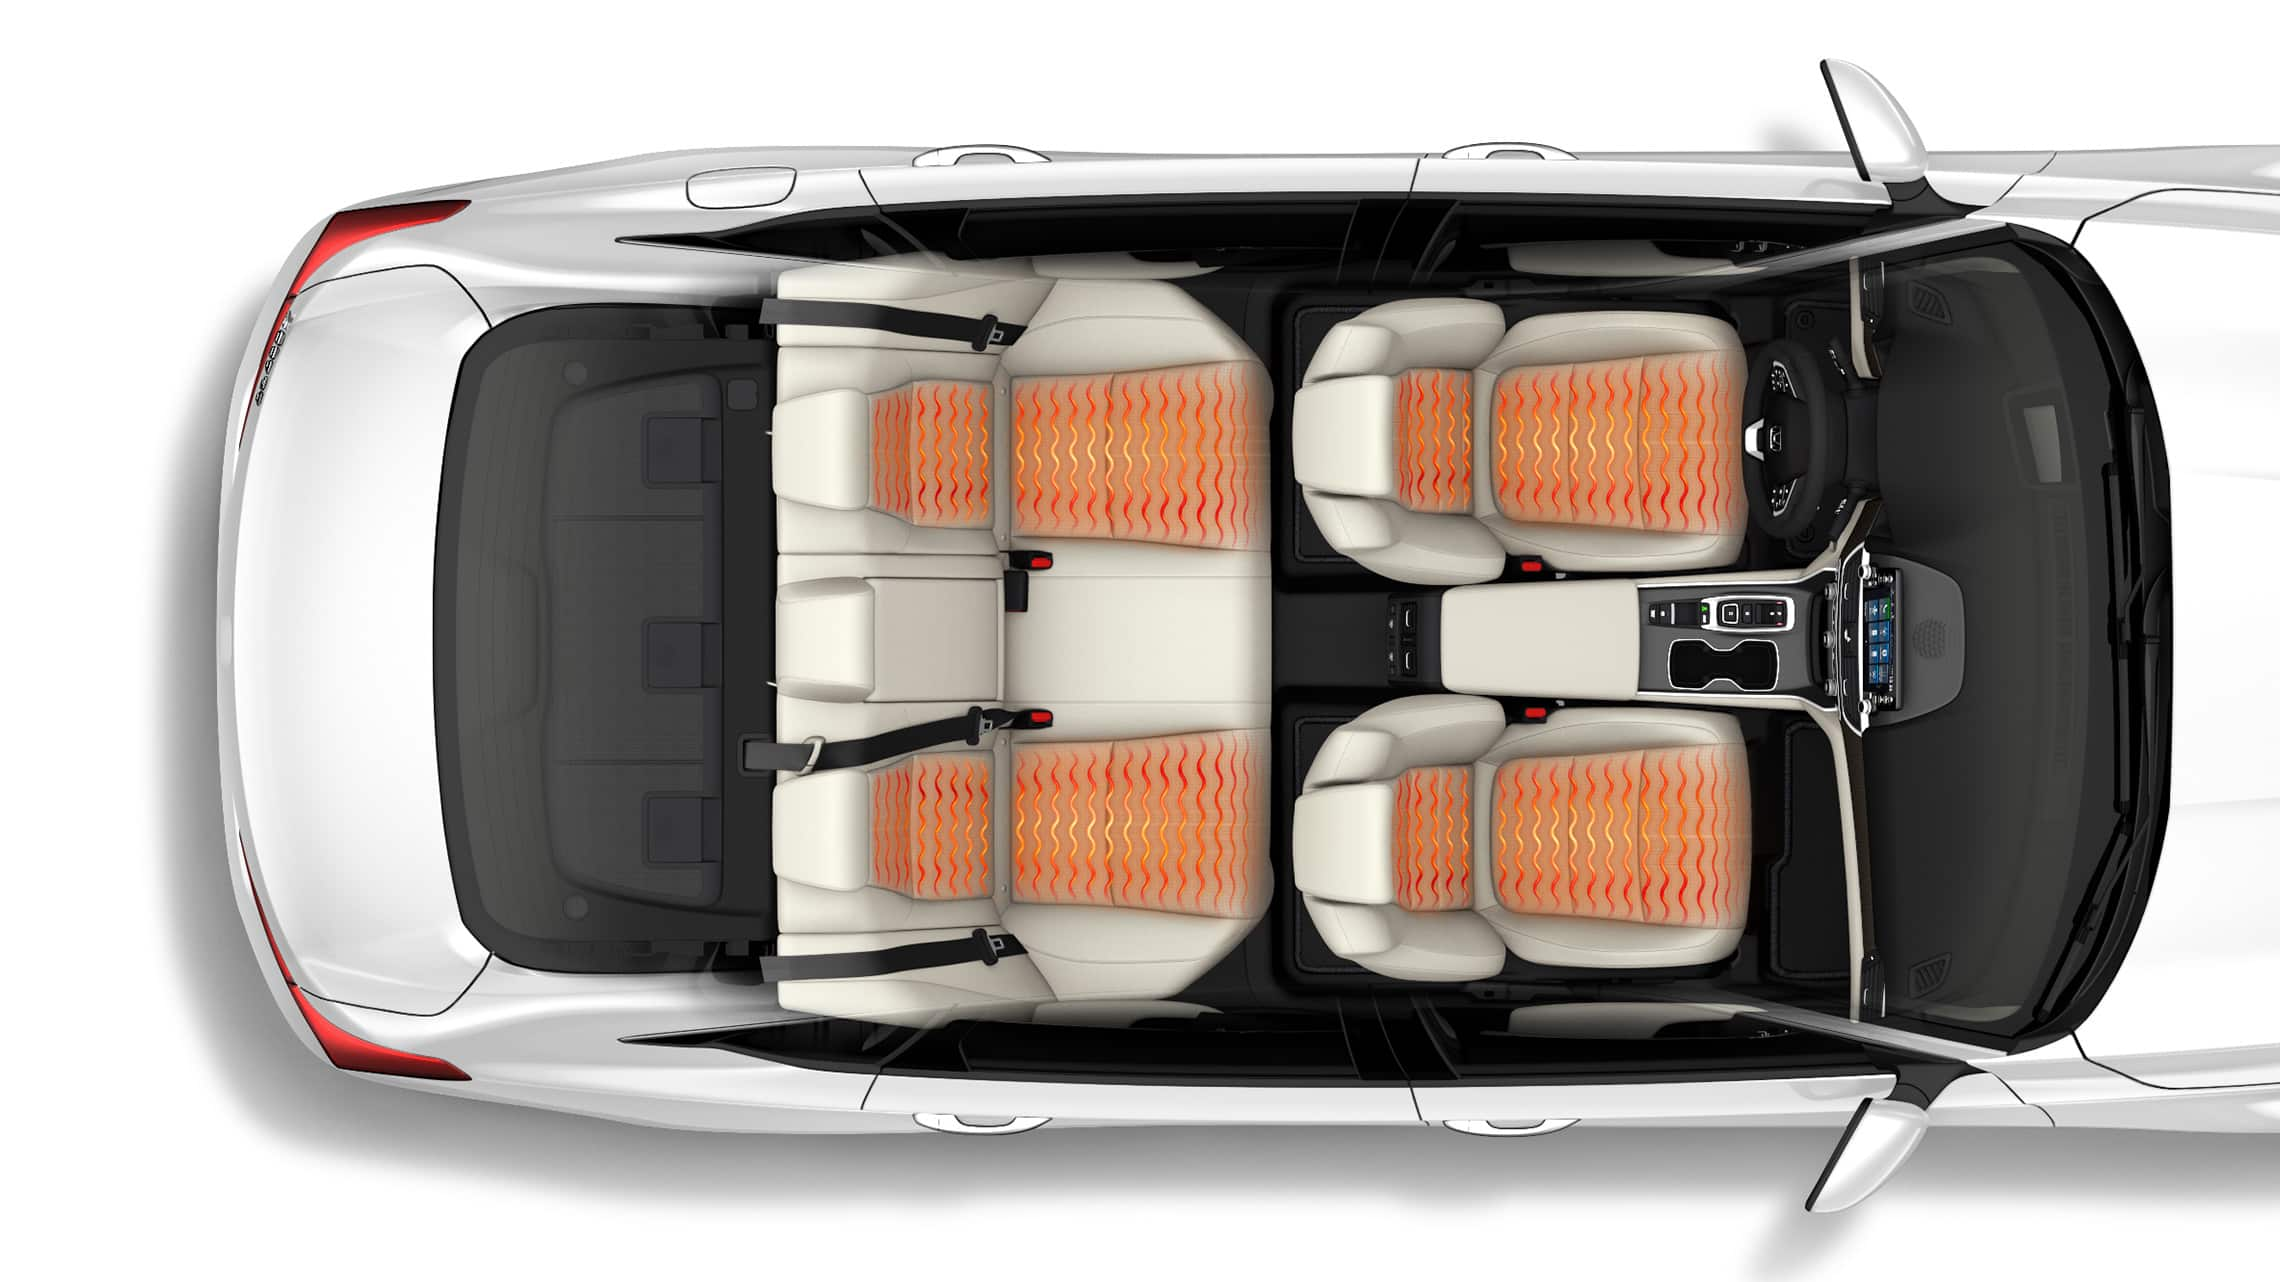 Overhead interior view of the 2021 Honda Accord Touring 2.0T with illustrated temperature waves showing heated front seats and outboard rear seats.